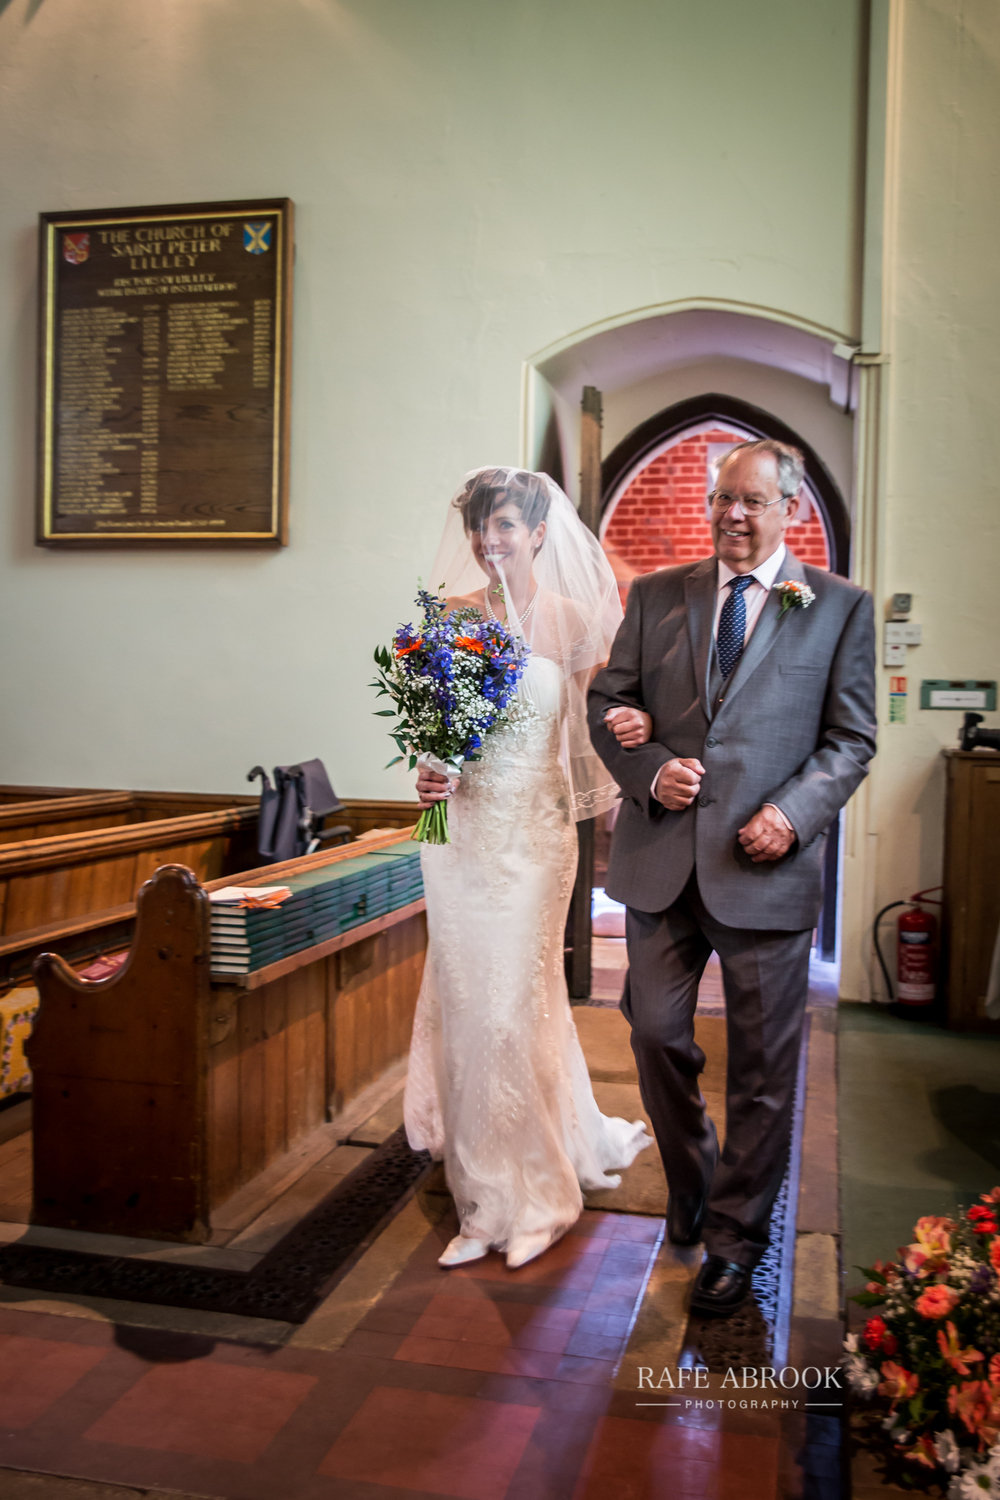 miriam & craig the dower house hexton hertfordshire wedding photographer-1188.jpg